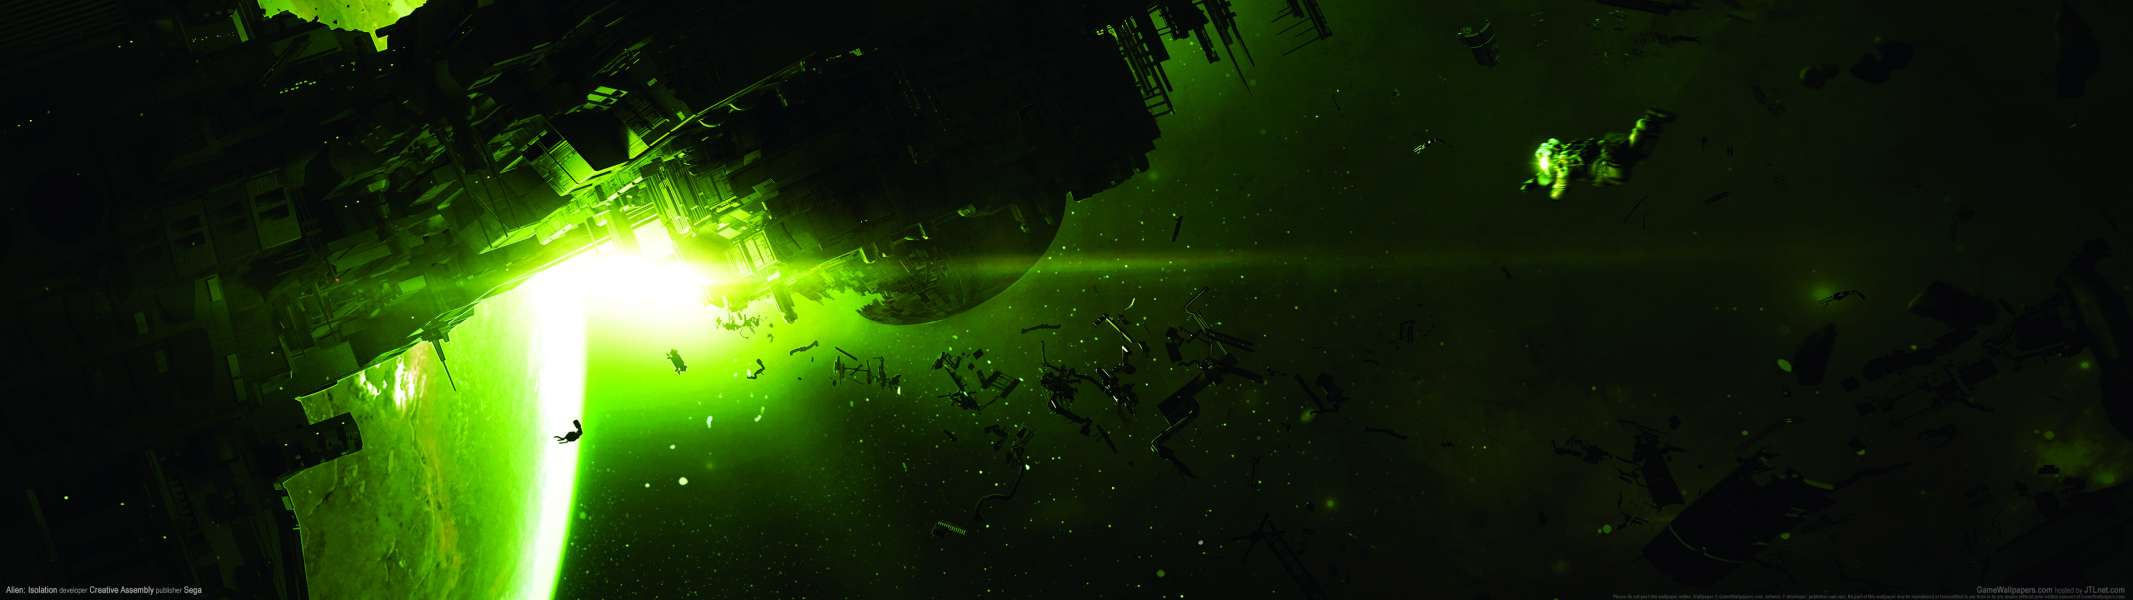 Alien: Isolation dual screen Hintergrundbild